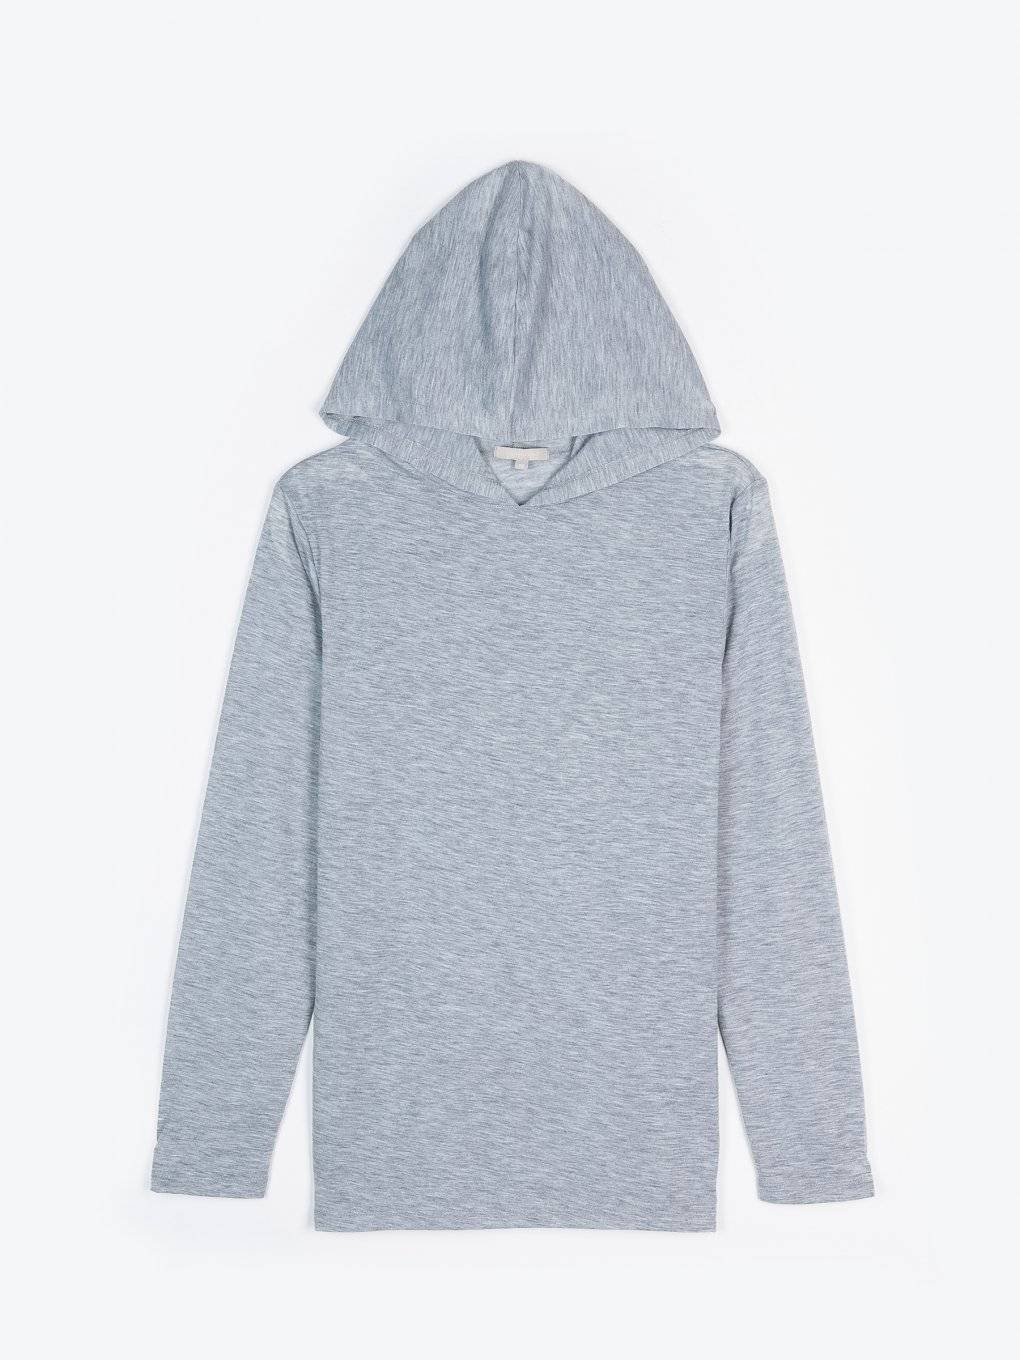 Top with hoodie